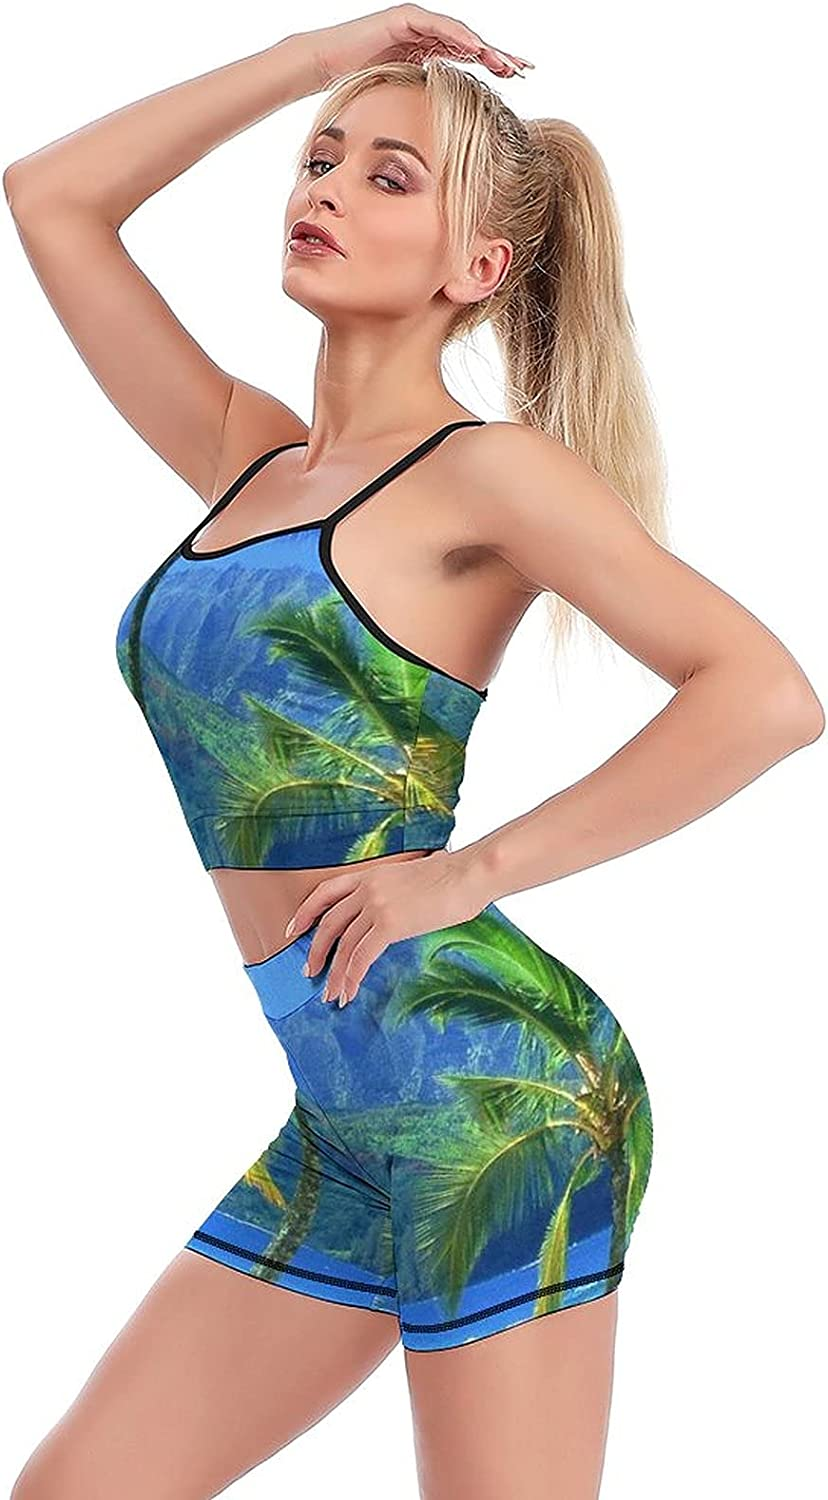 Yoga Workout Sets for Manufacturer direct delivery SportTa Shorts Max 83% OFF Coconut-Tree Women